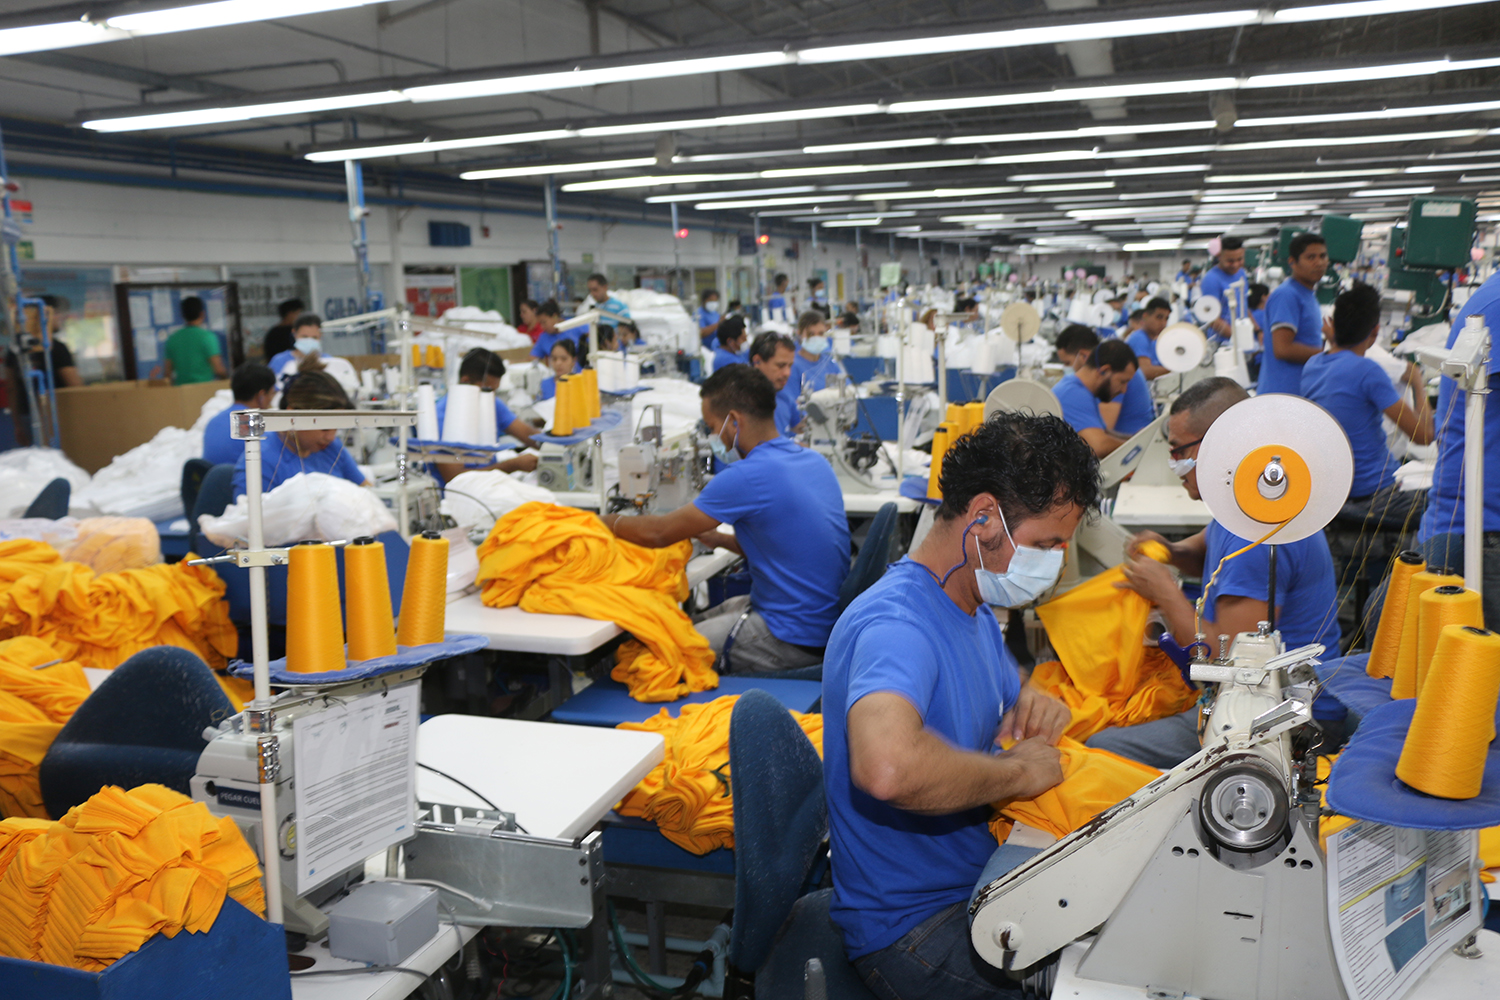 Suppliers could lose US$55 million due to work stoppages